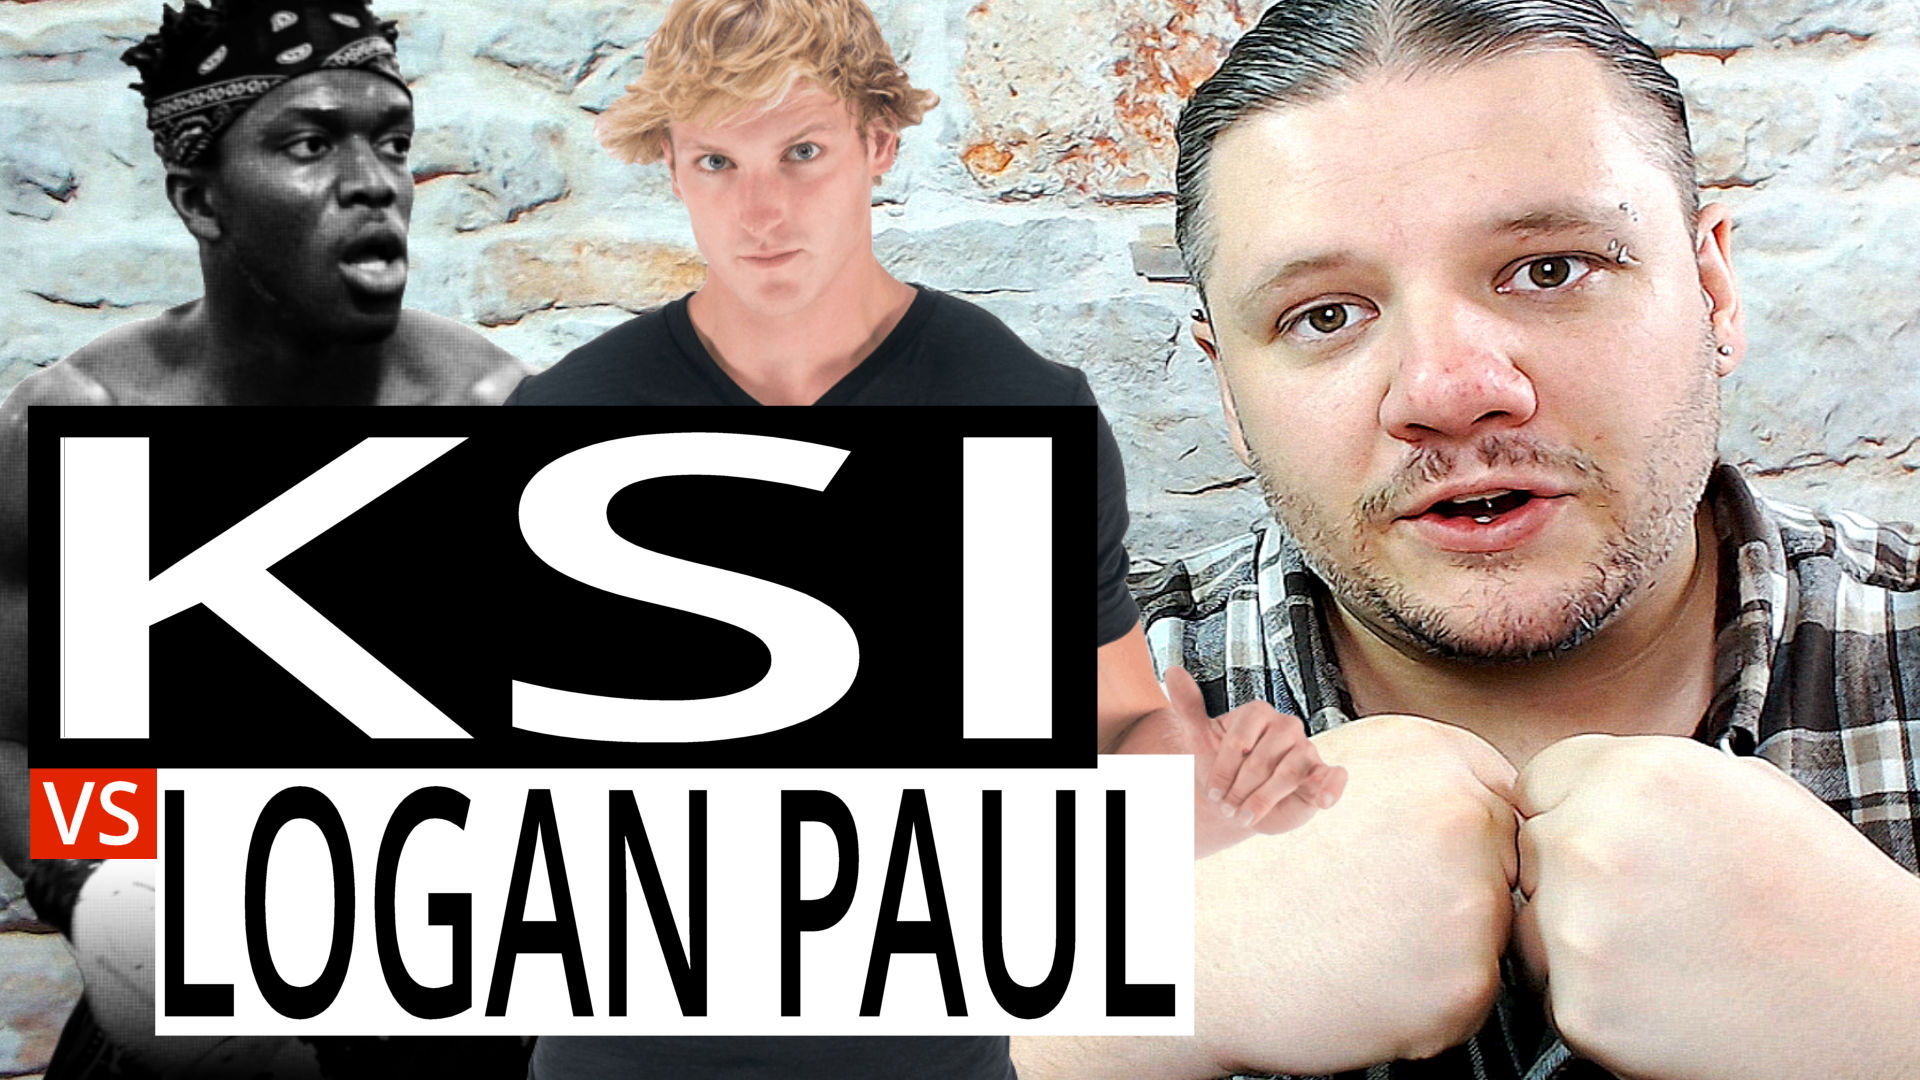 alan spicer,alanspicer,asyt,ksi logan,deji vs jake paul,jake vs deji,ksi vs logan paul,ksi boxing,jake paul,logan paul boxing,ksi vs logan,logan paul,ksi logan paul,boxing fight,ksi fight,KSI vs Logan Paul reaction,KSI vs Logan Paul live,ksi vs logan paul august 25,ksi vs logan paul august,ksi vs logan paul live stream,ksi vs logan paul manchester,KSI vs Logan Paul boxing match,KSI vs Logan Paul boxing,KSI vs Logan Paul full fight,ksi,logan,cant lose